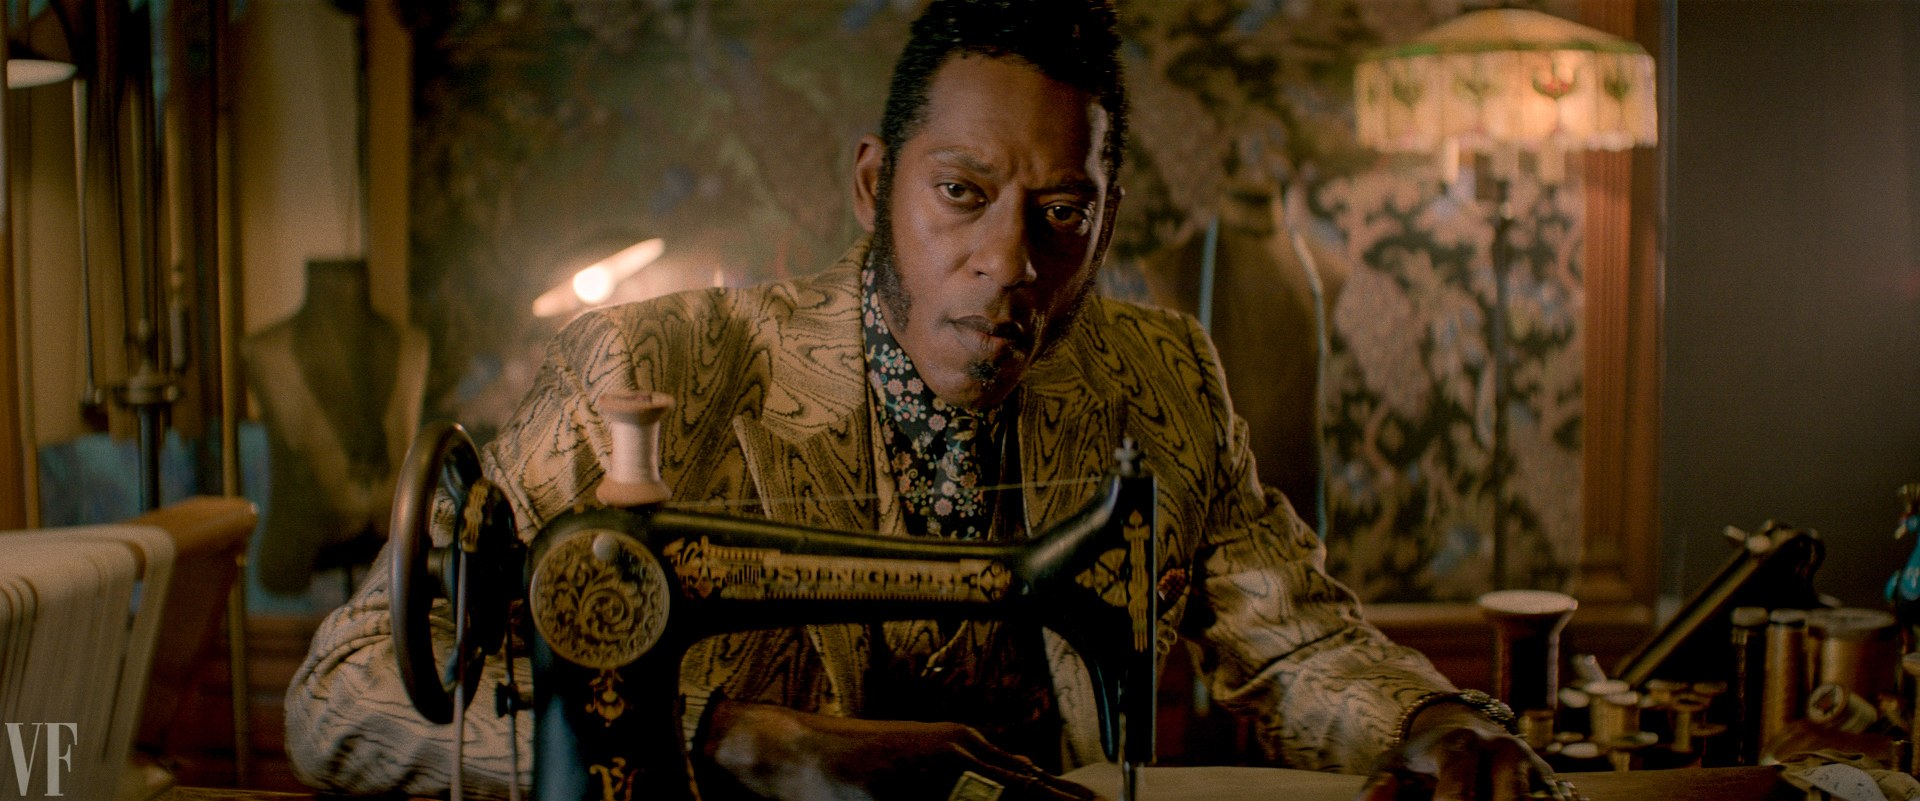 american-gods-first-look-orlando-jones